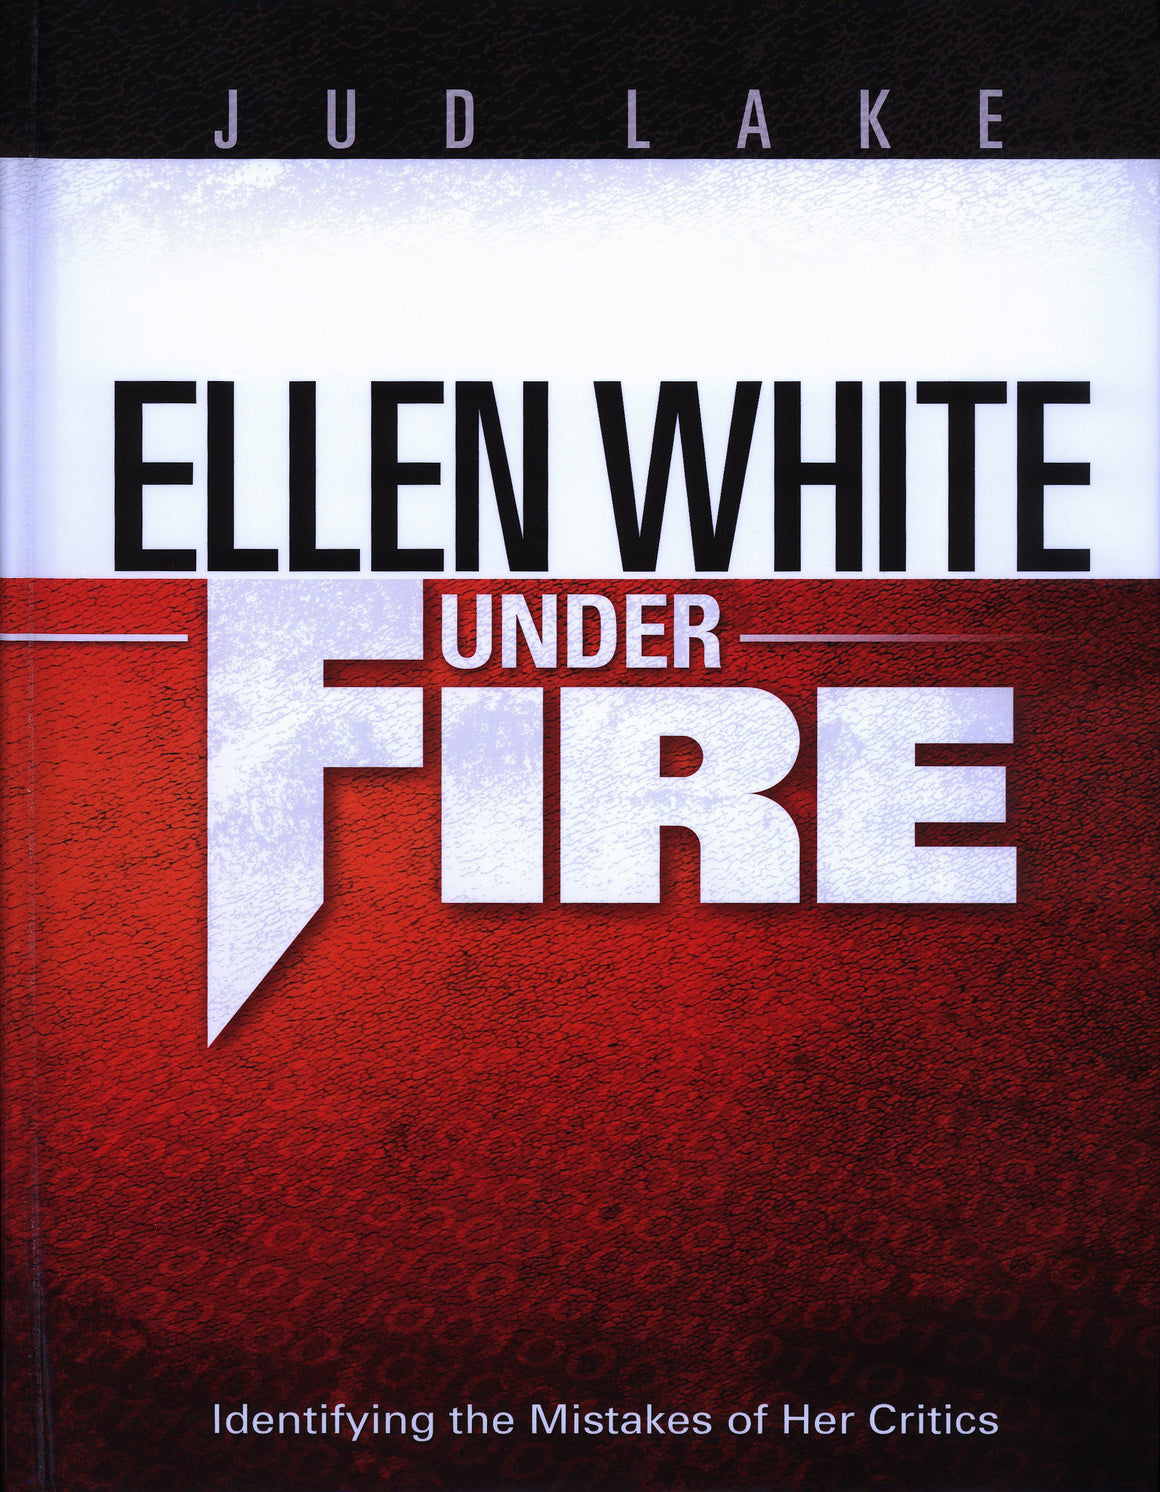 Ellen White Under Fire: Identifying the Mistakes of Her Critics